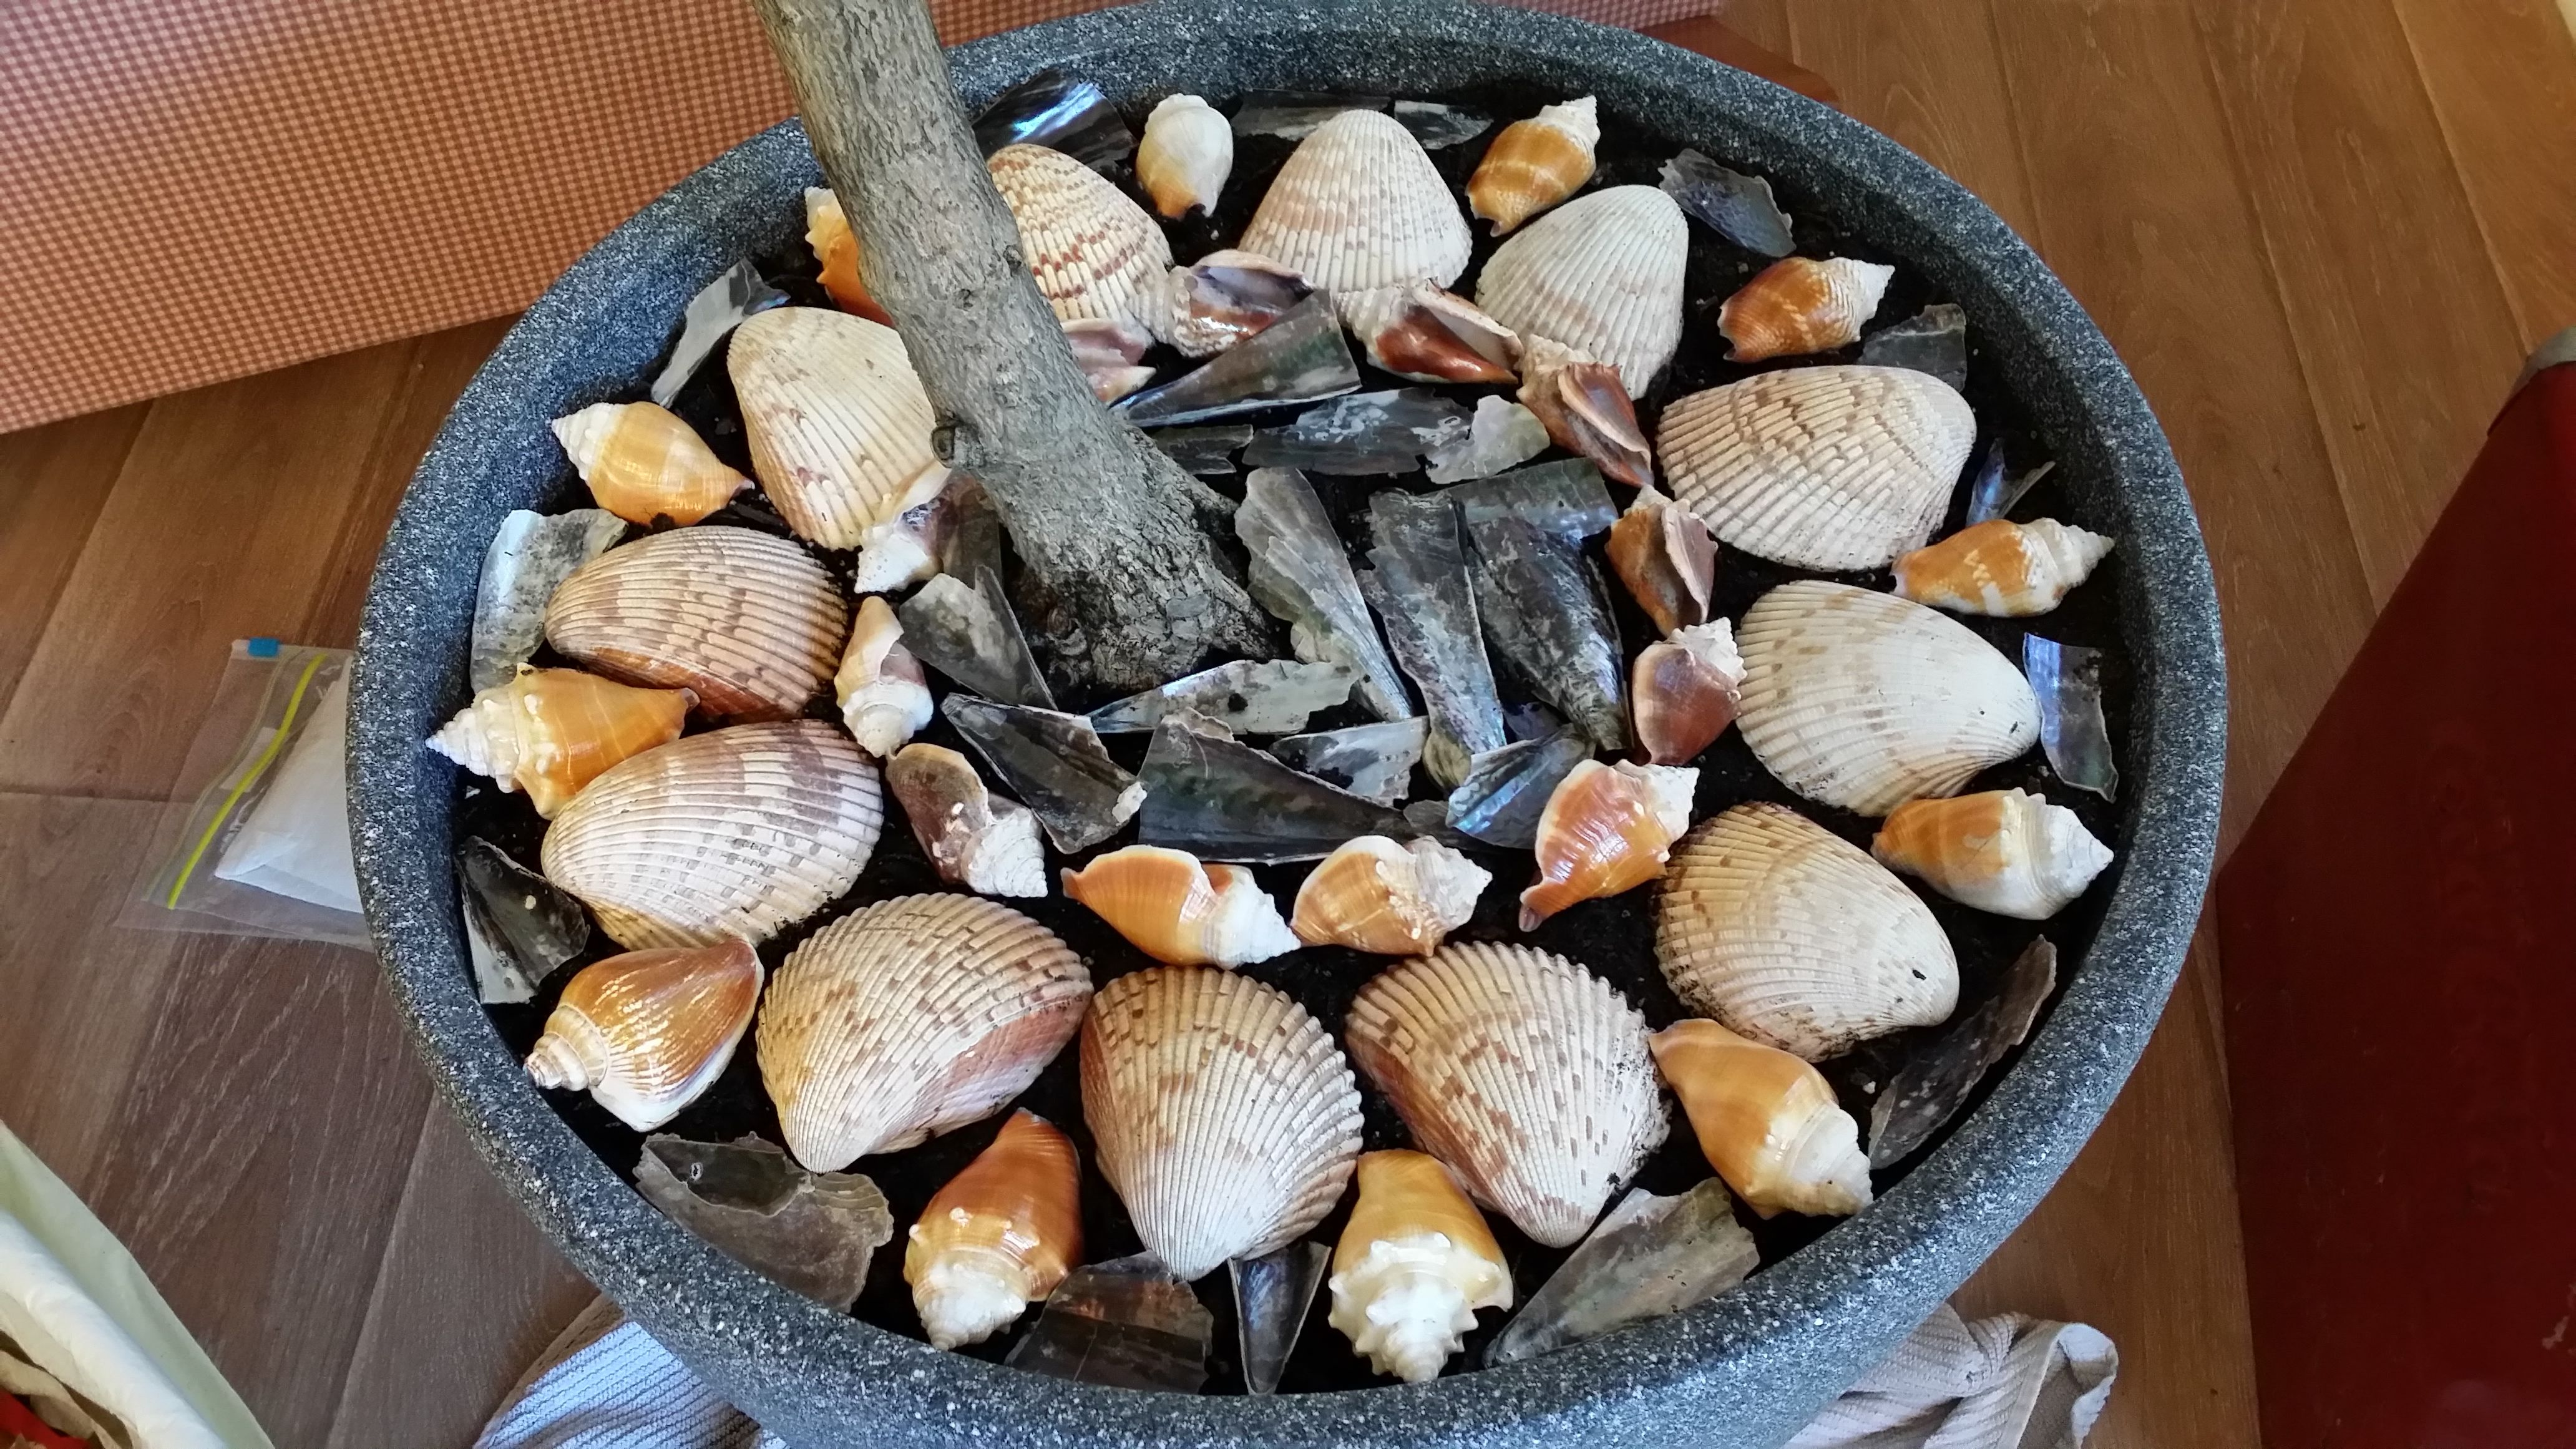 Shells are arranged on top of the soil in one of our potted plants...a great way to display our collections!